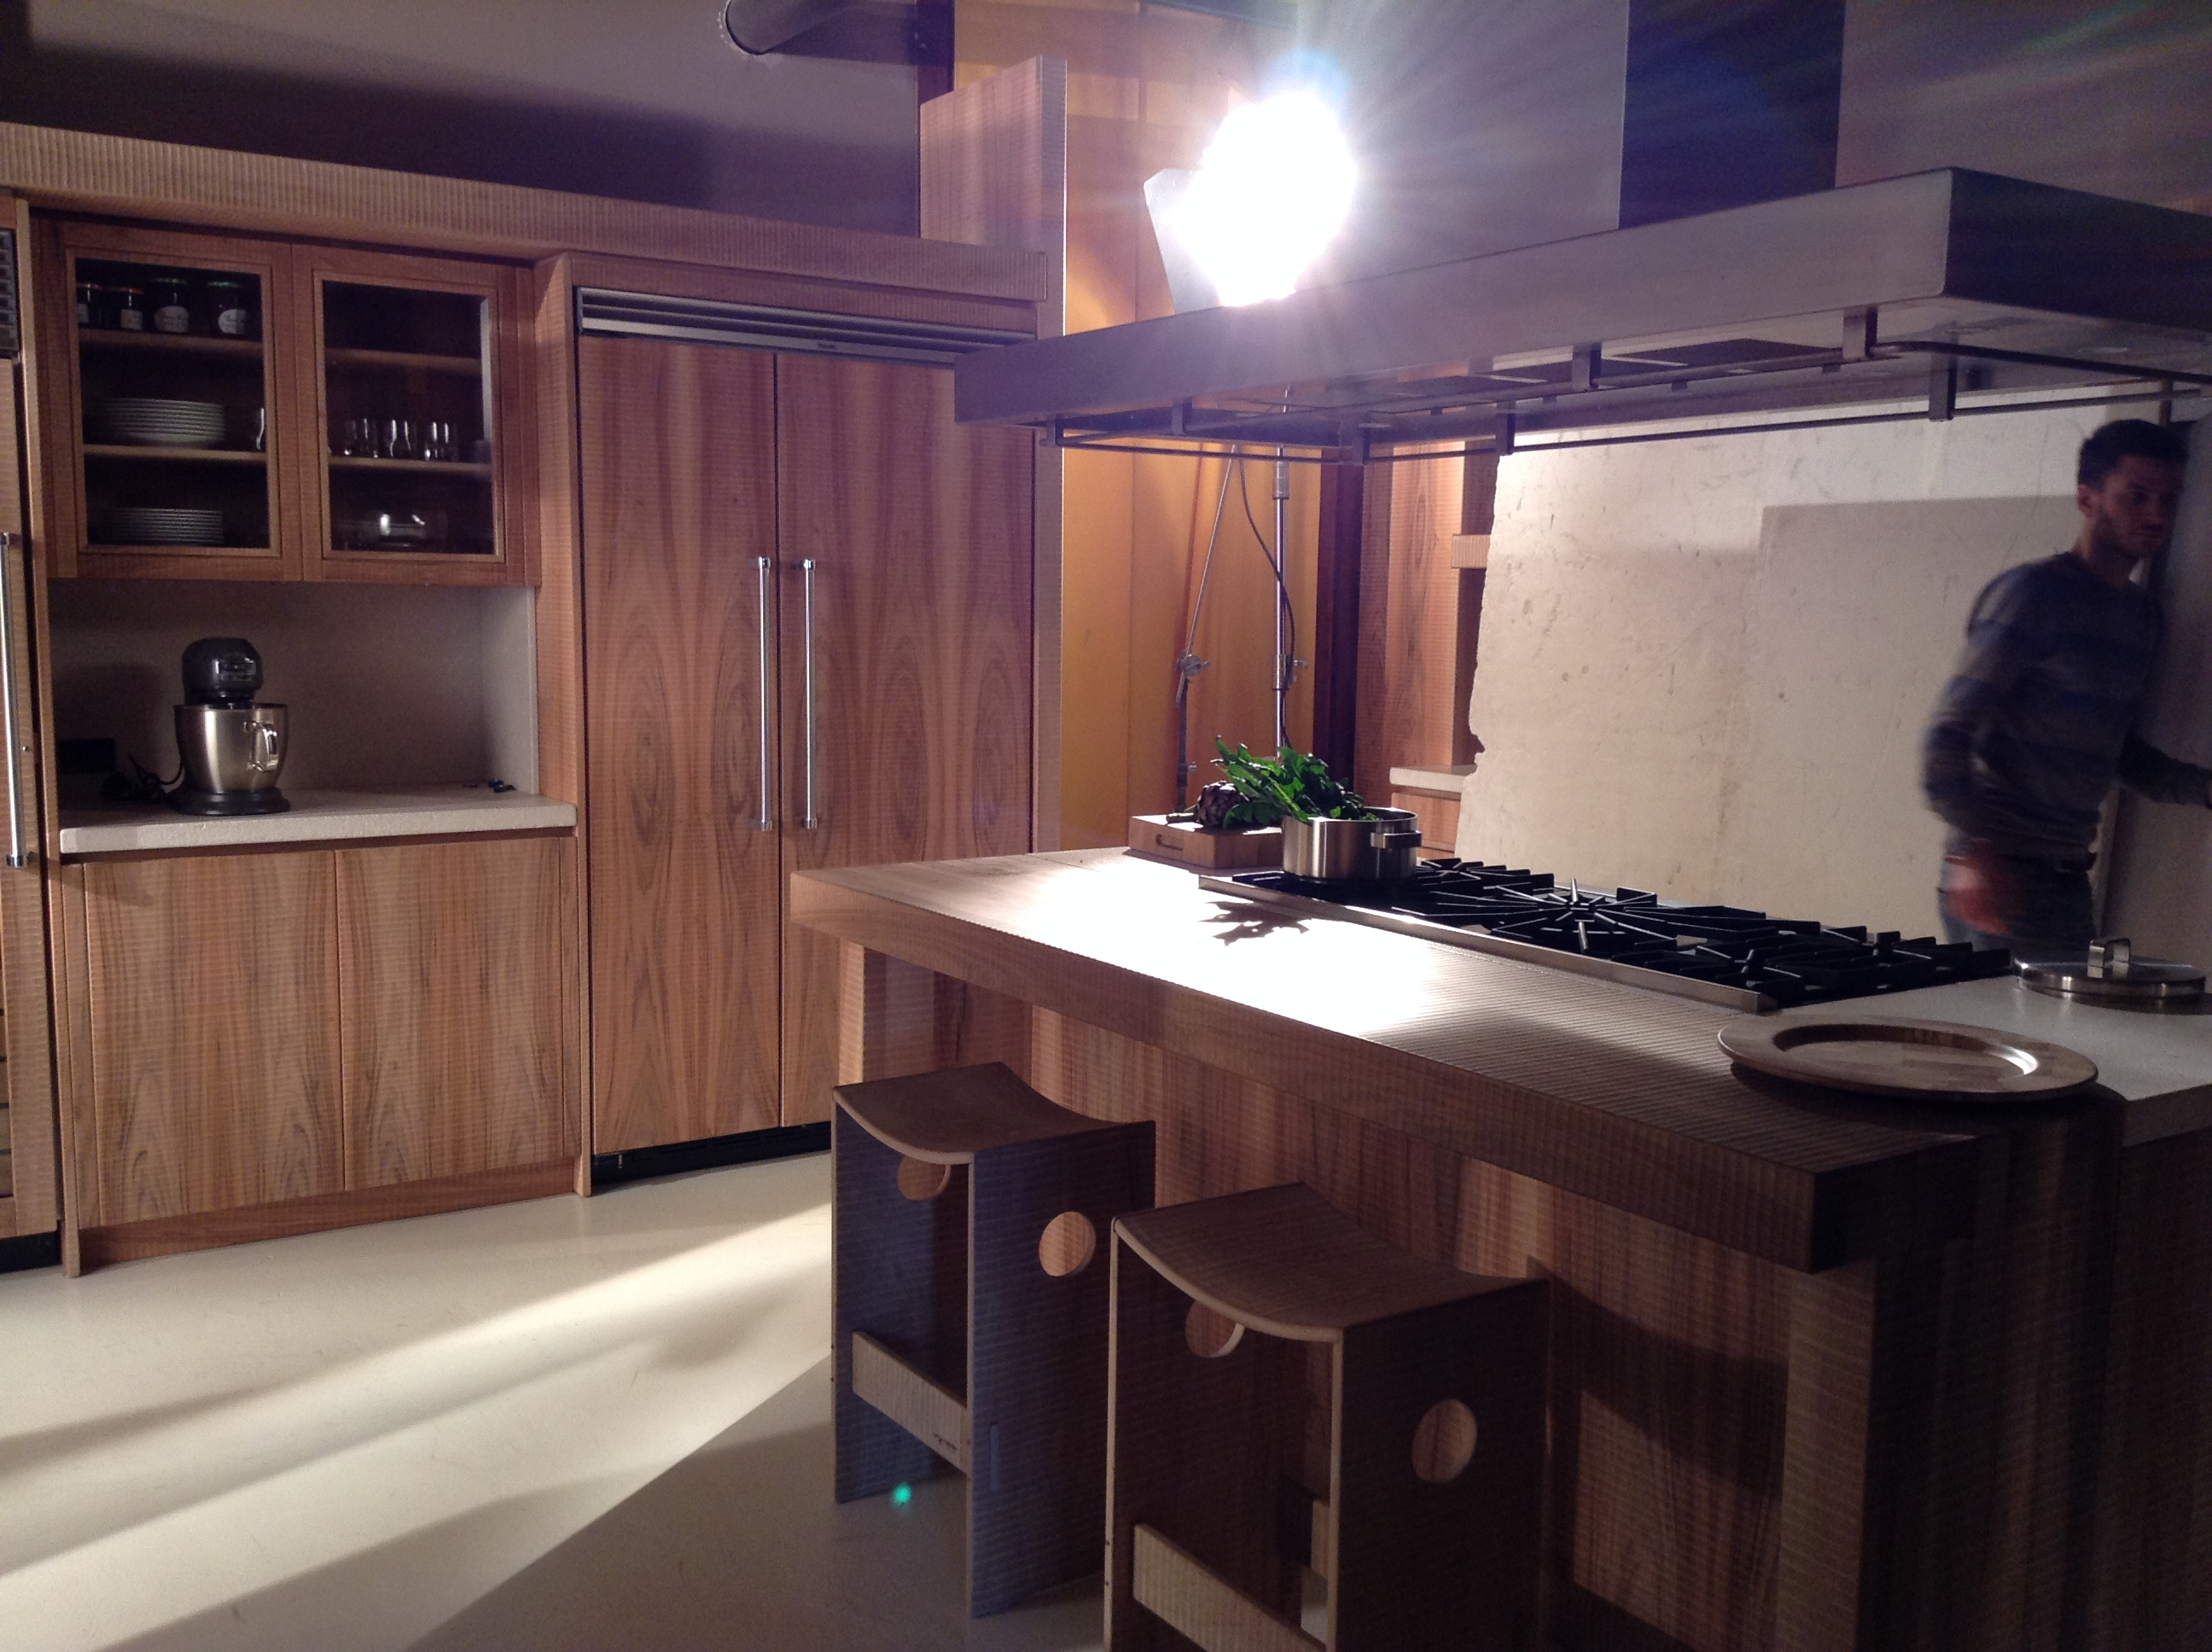 Habito Catalogue 2015 Work in Progress. Wood kitchen set